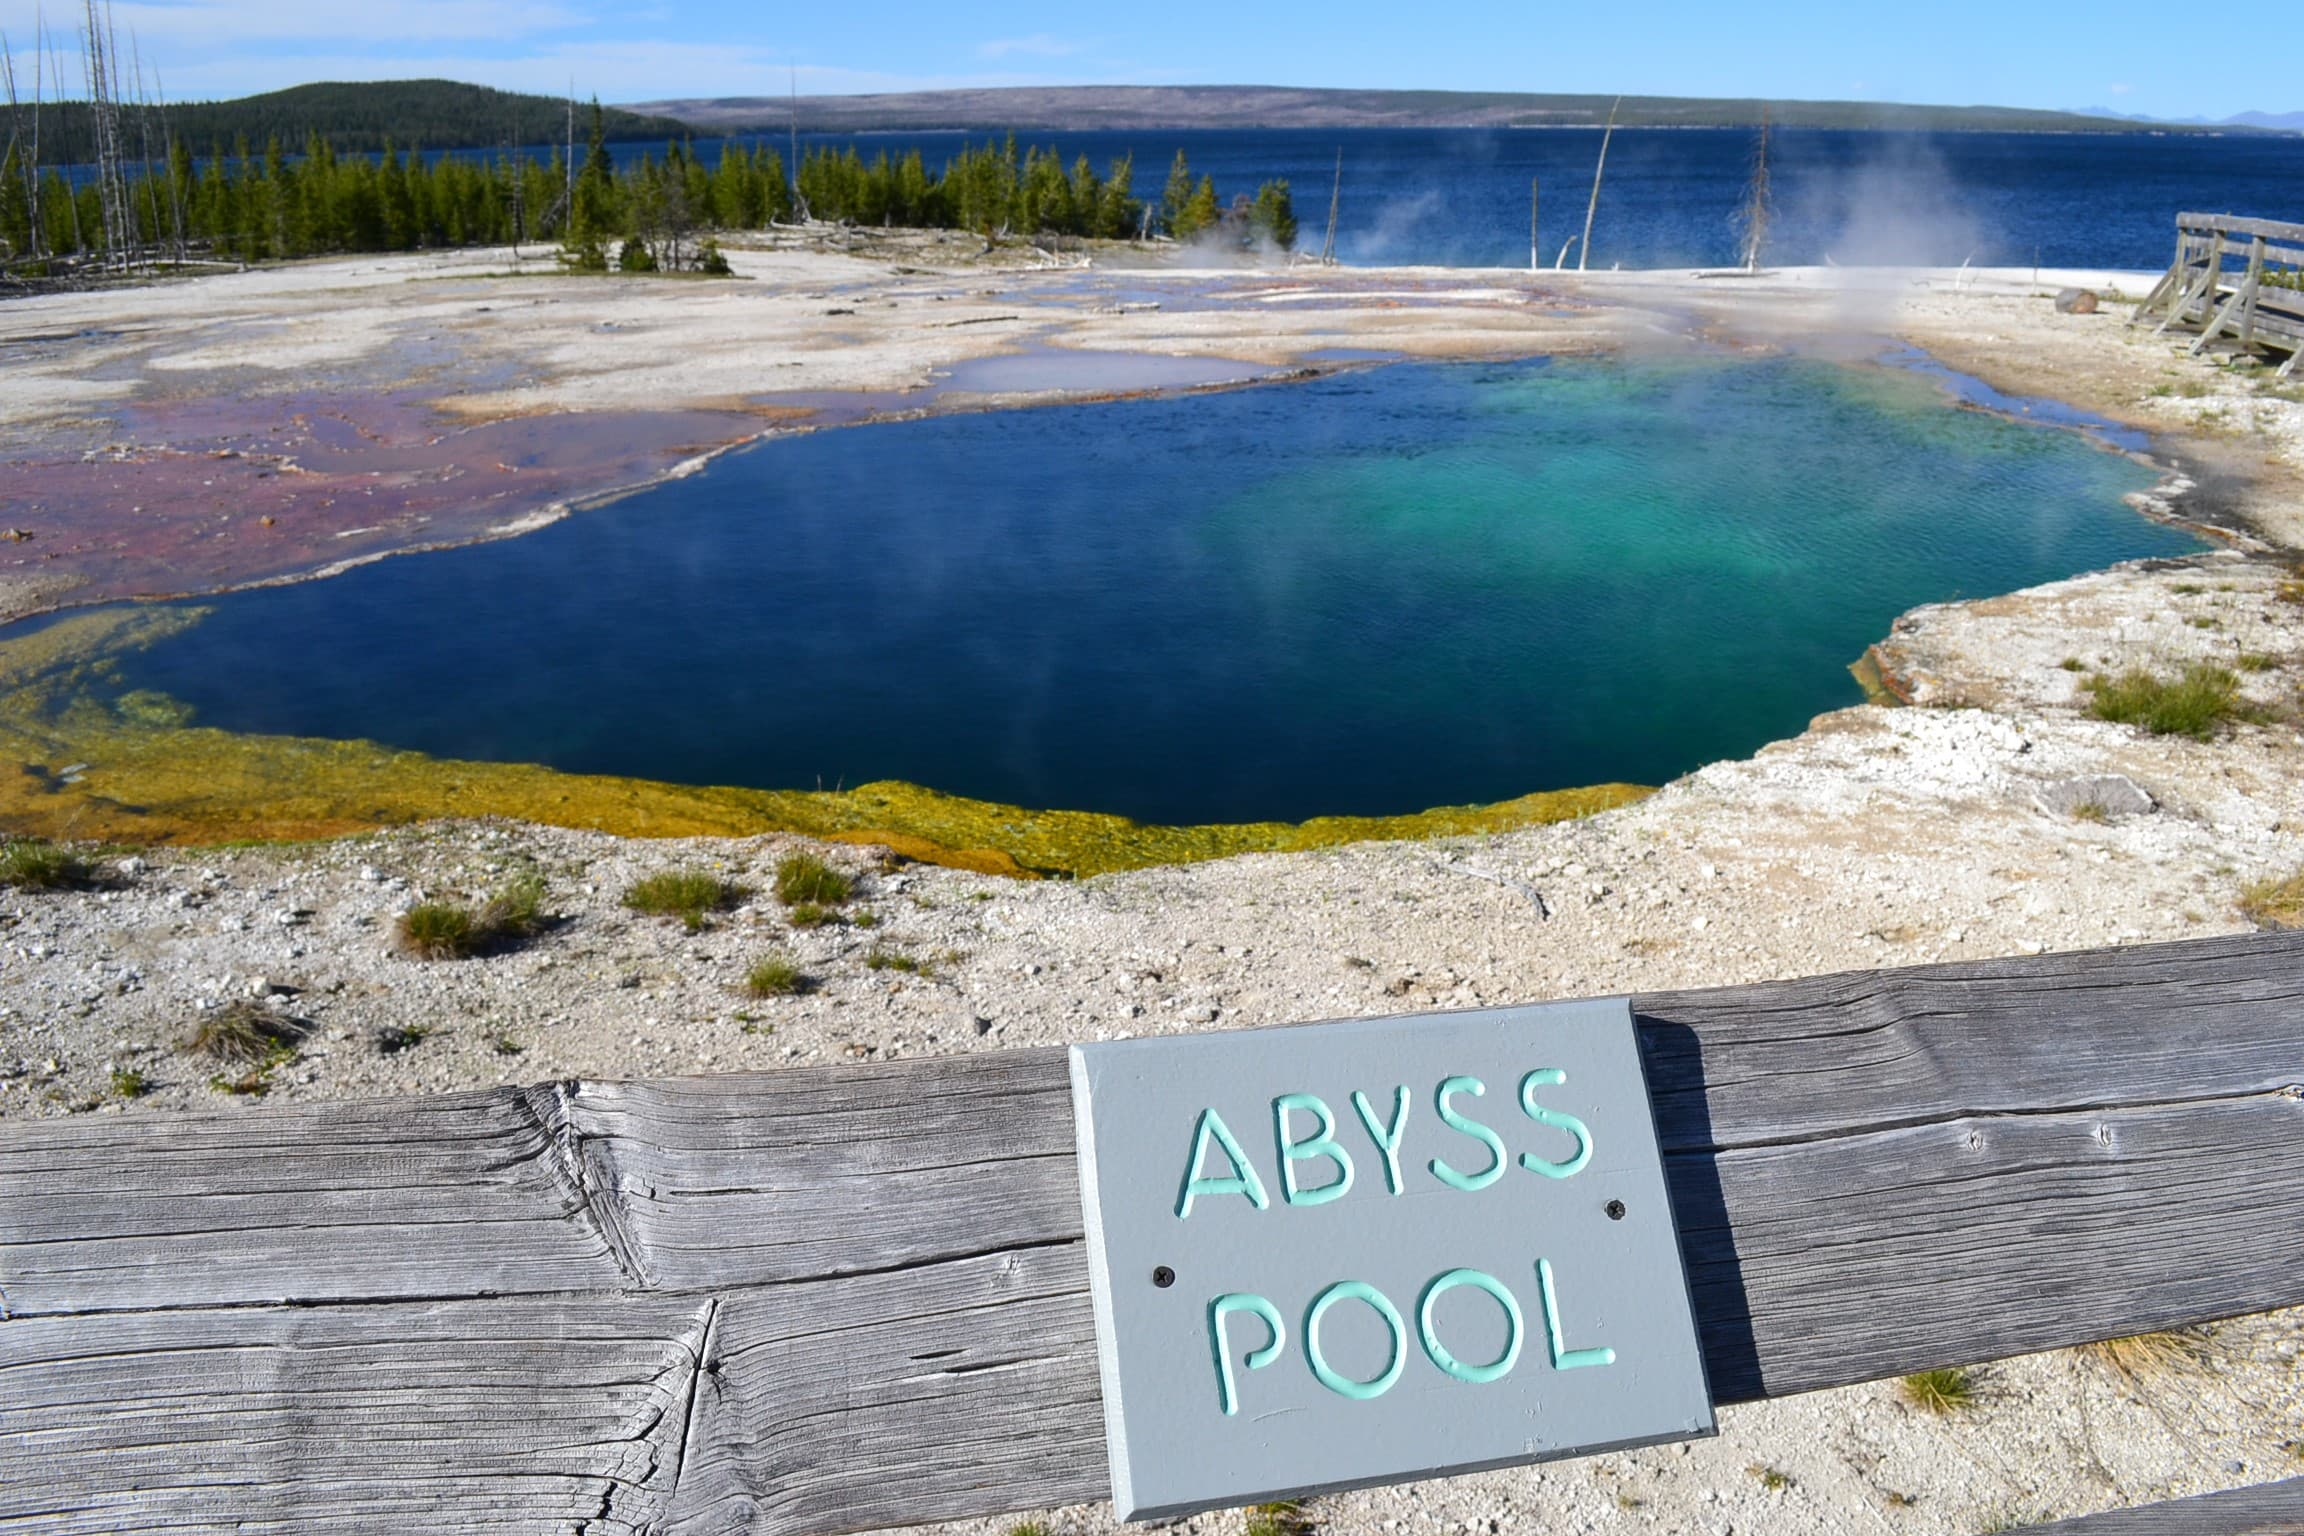 Abyss Pool hot spring Yellowstone Park.